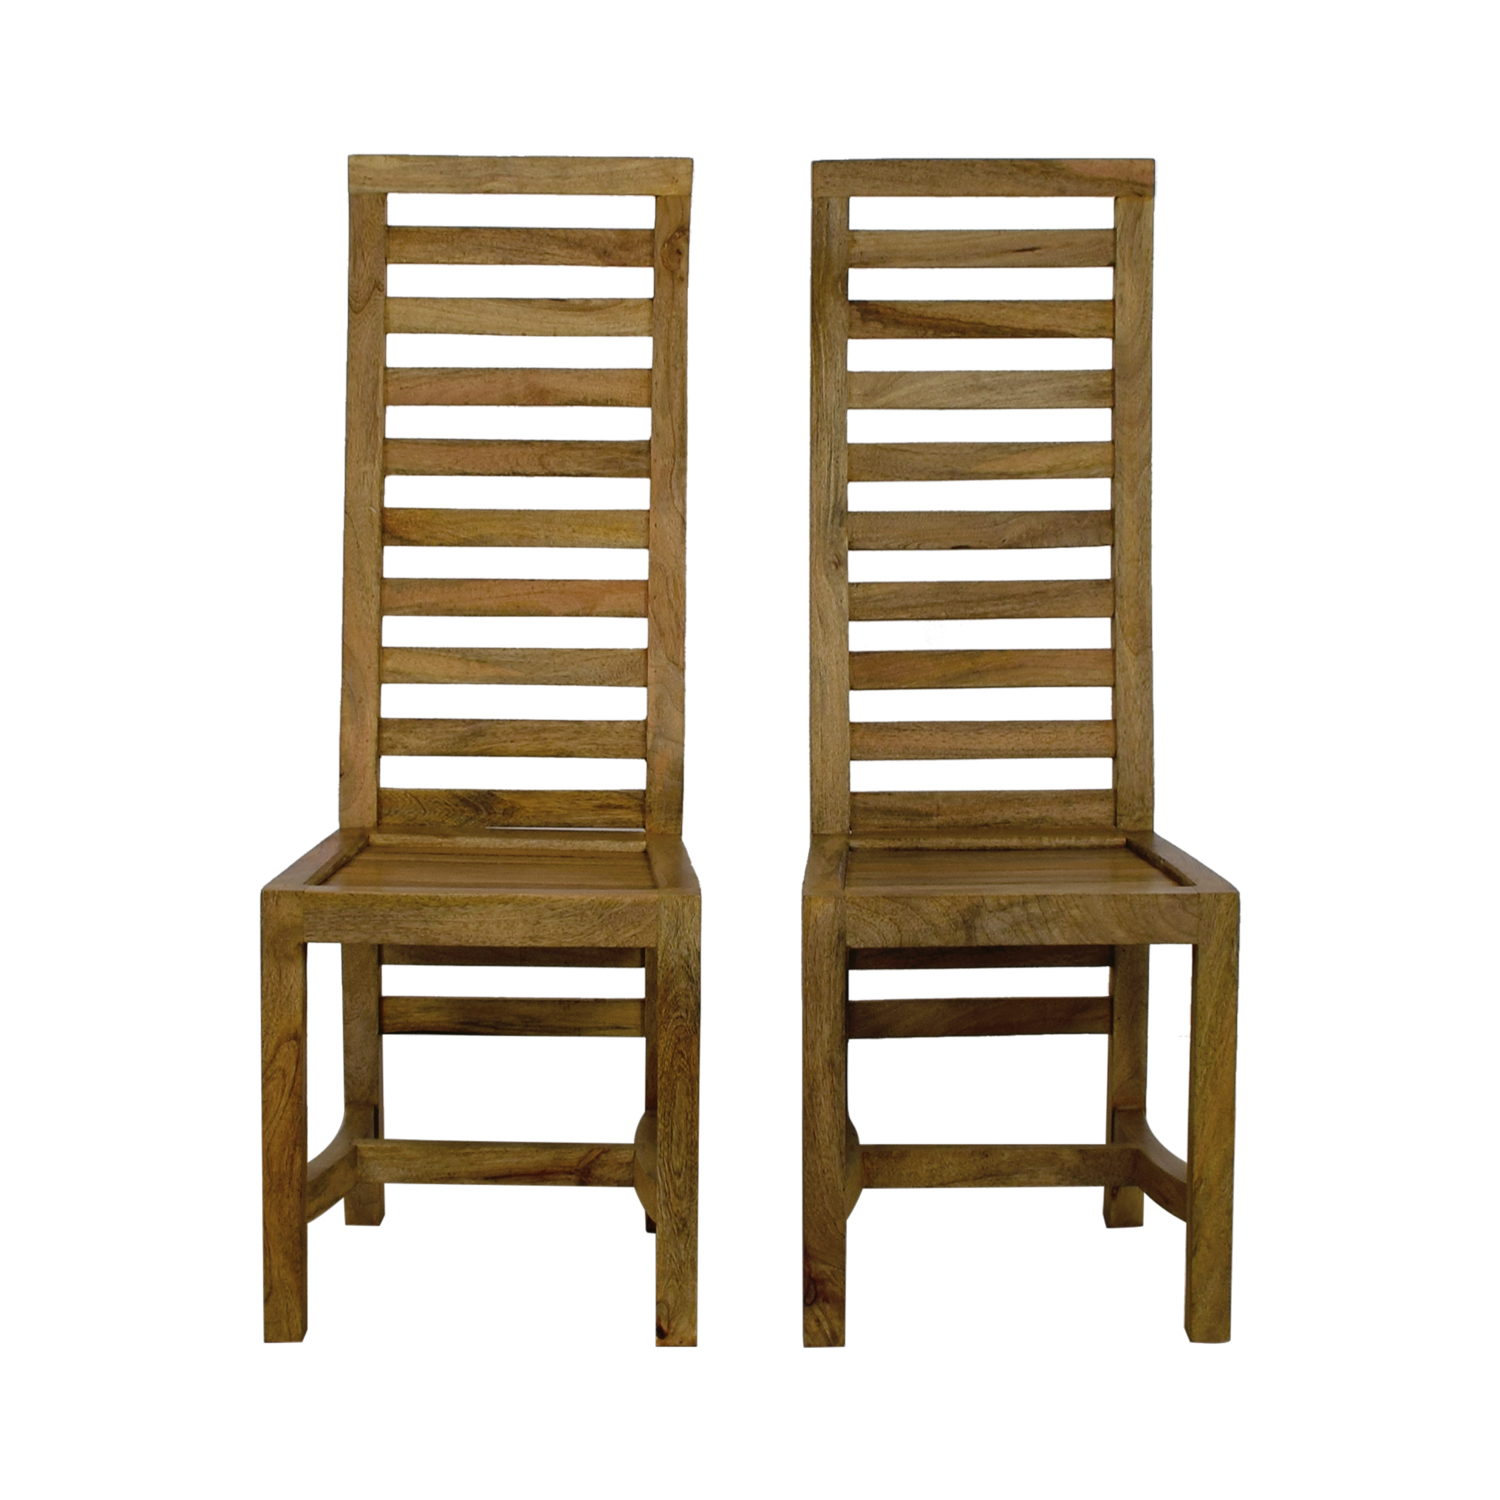 shop Nadeau Nadeau Rustic High Back Wooden Chairs online